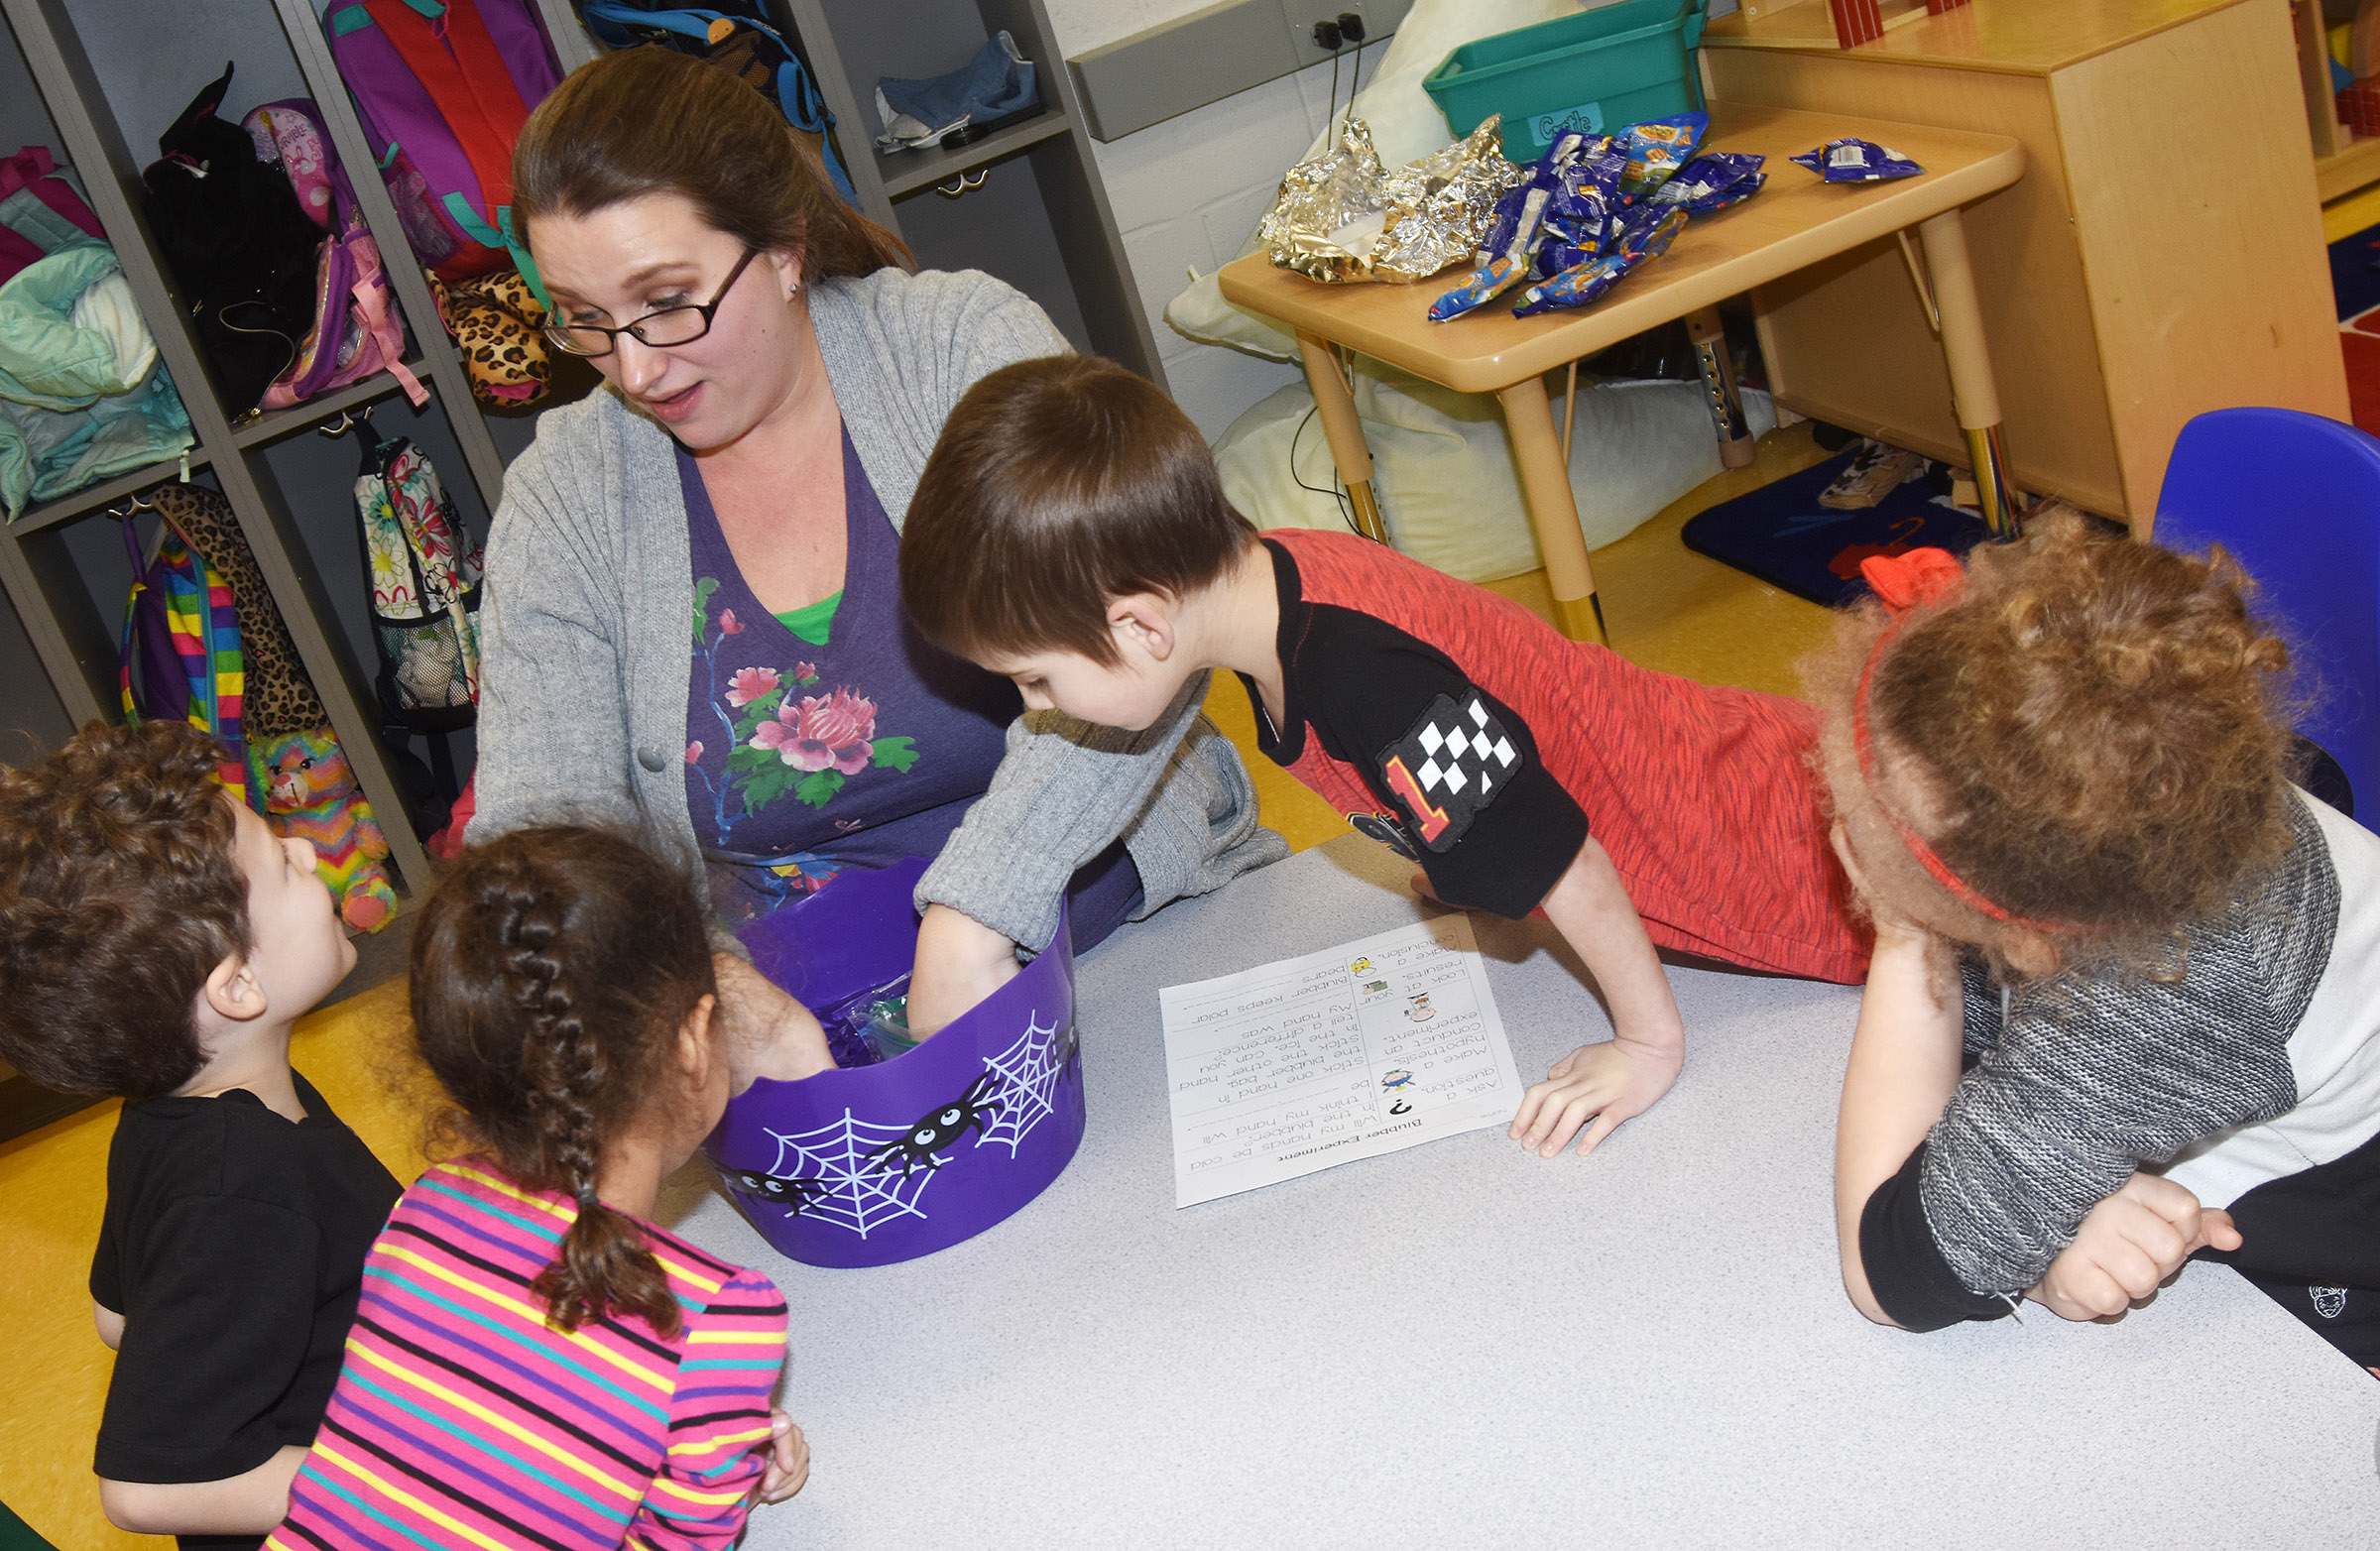 CES preschool assistant Jessica Williams places her hand inside ice water to see how cold it is, as her students watch.